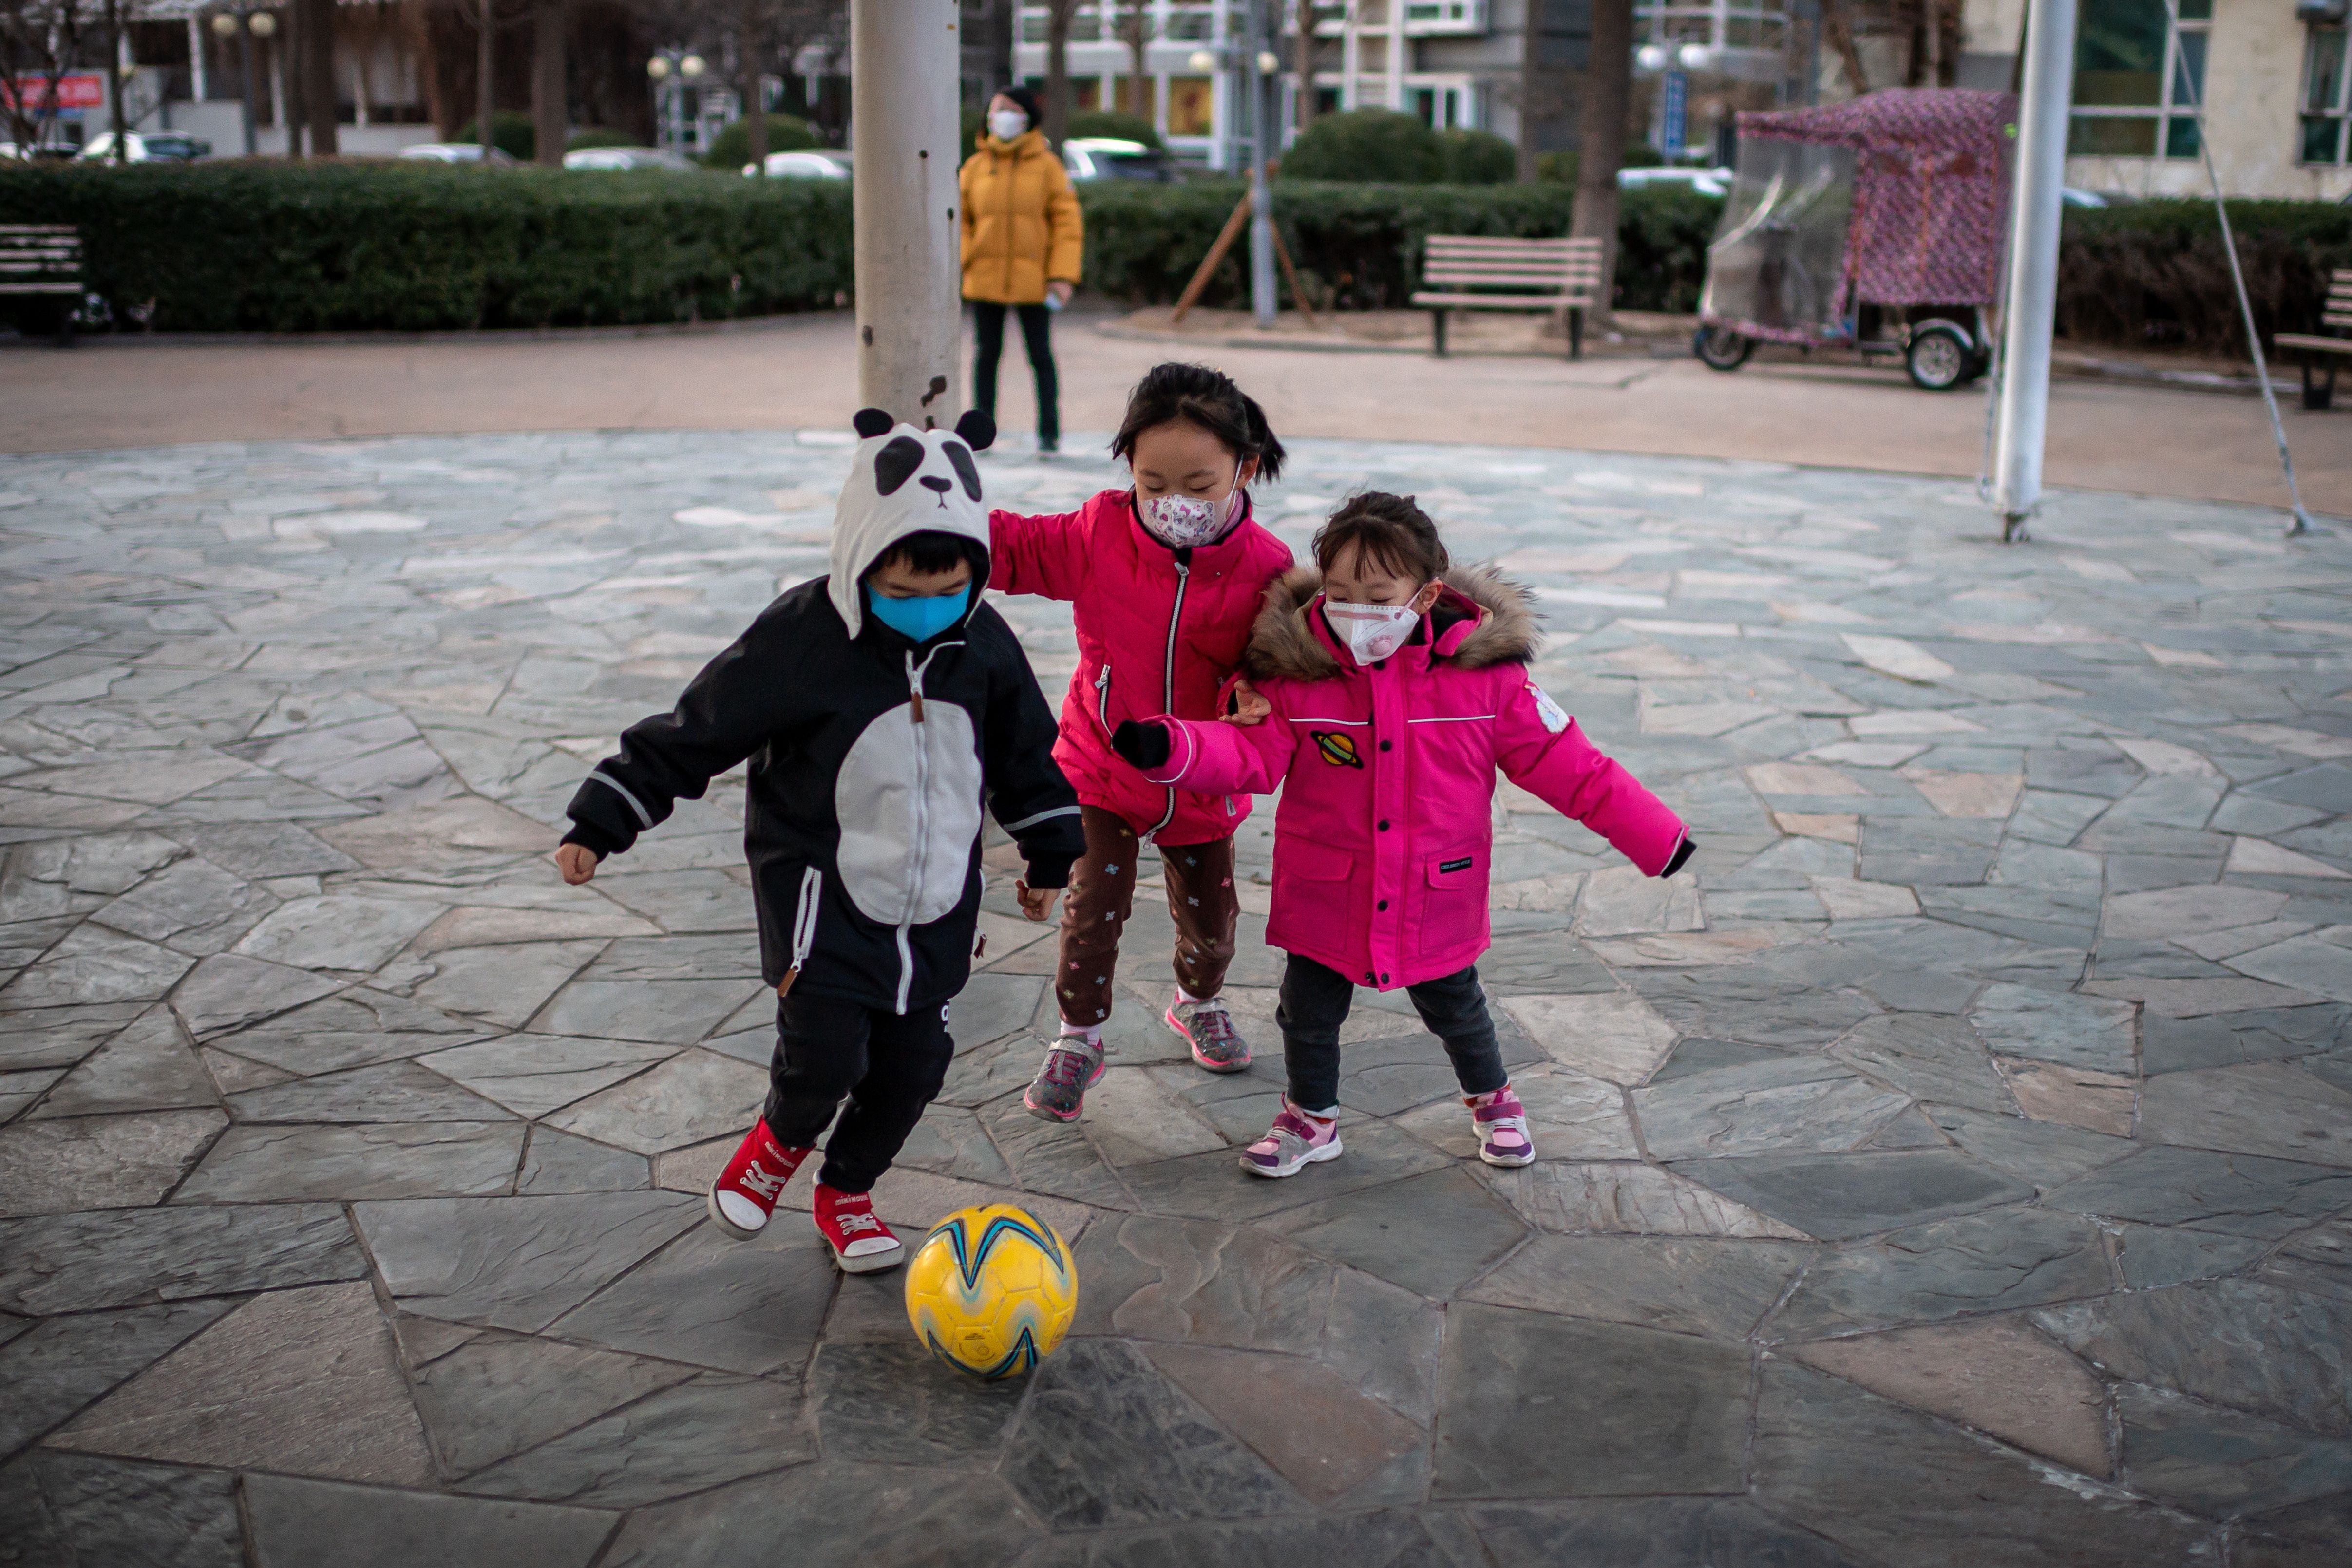 Children wearing protective facemasks to help stop the spread of the Wuhan coronavirus play soccer inside a condominium complex in Beijing.